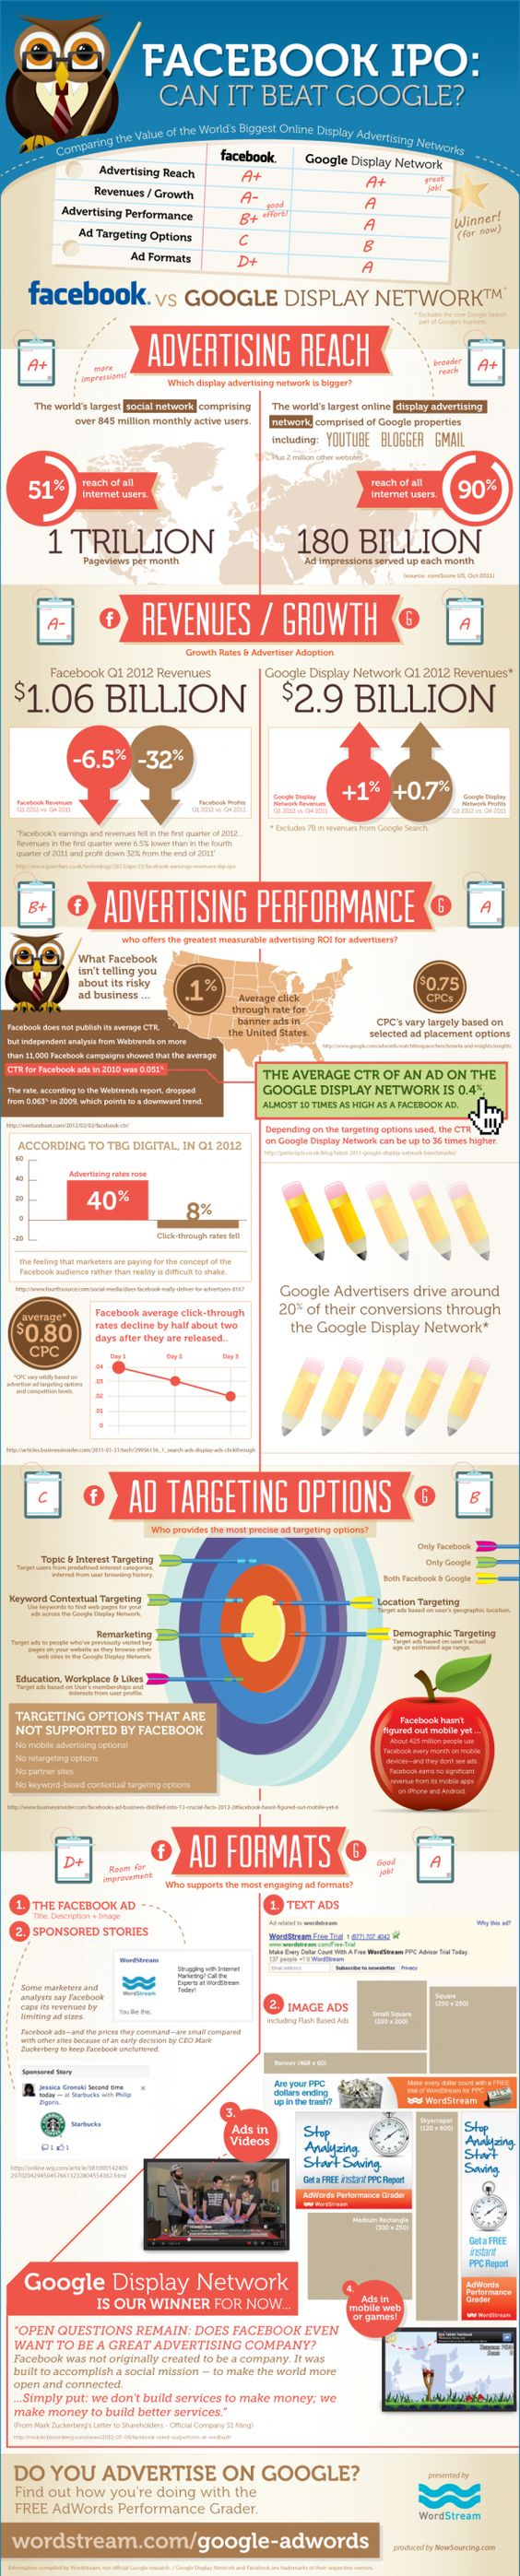 Can Facebook Beat Google in Online Advertising? [Infographic] | Design Inspiration